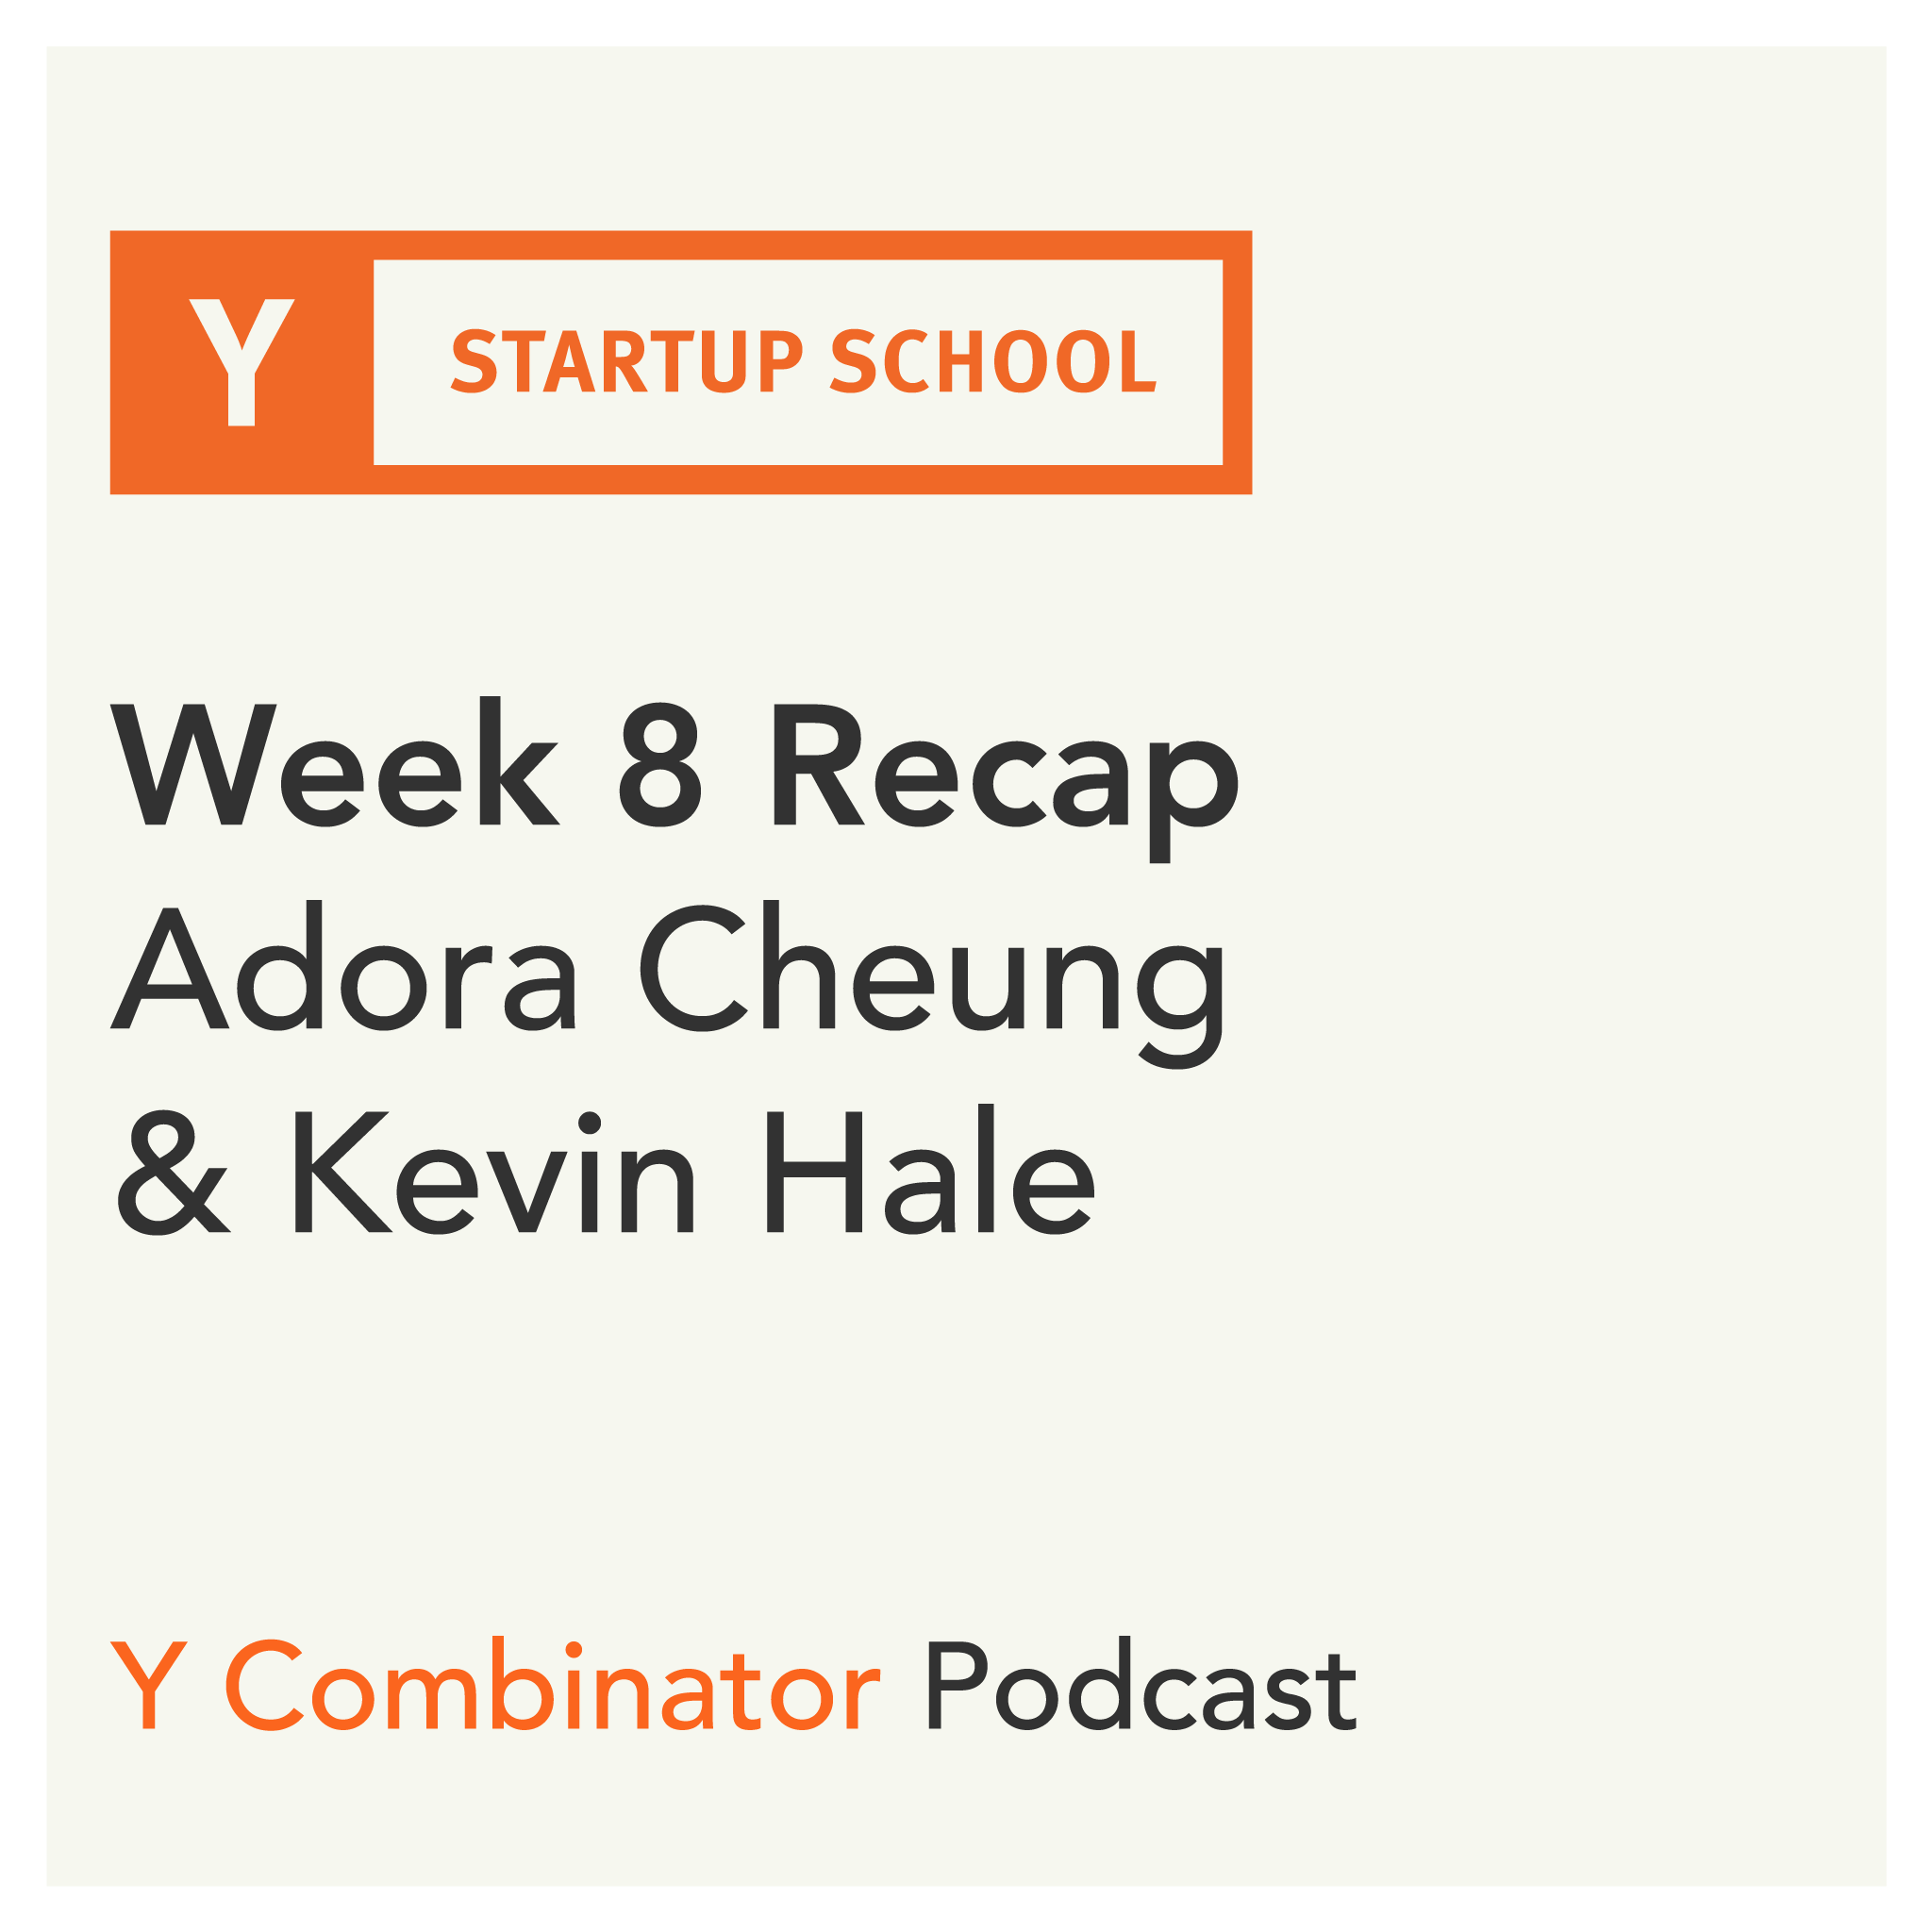 #149 - Startup School Week 8 Recap - Adora Cheung on Prioritizing Your Time and Kevin Hale on Evaluating Startup Ideas